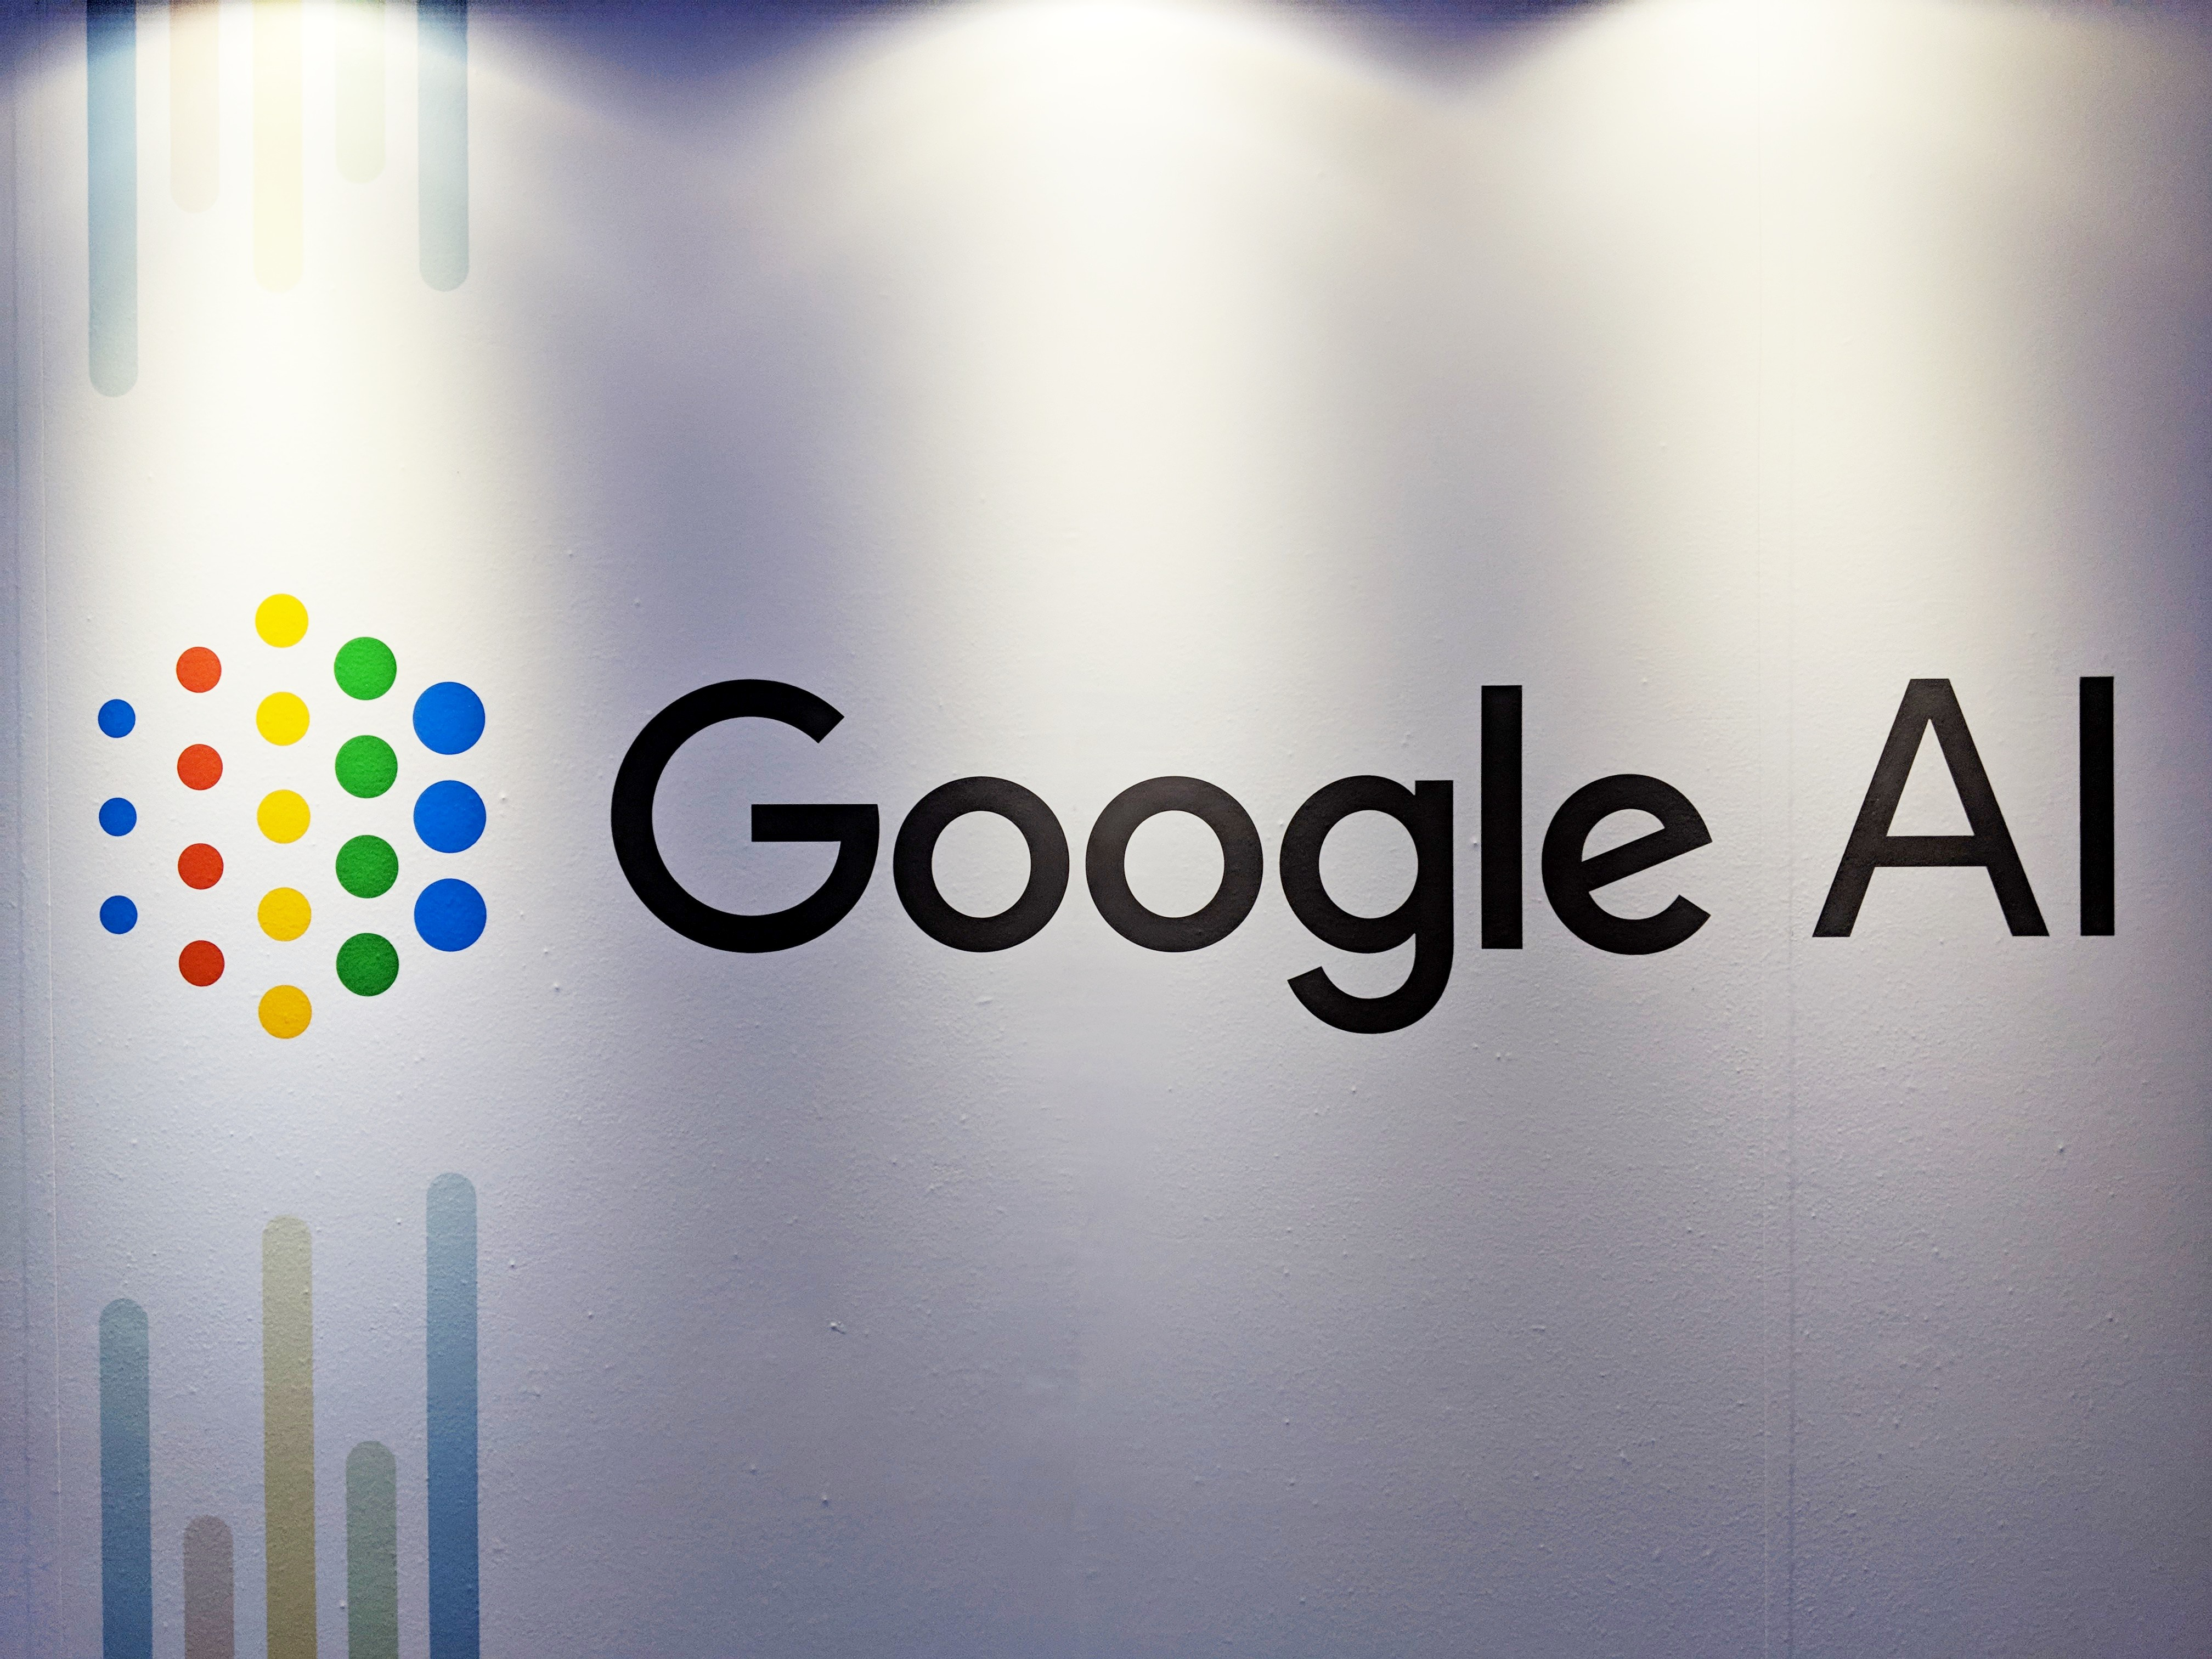 Google awards $25 million in global AI impact grants